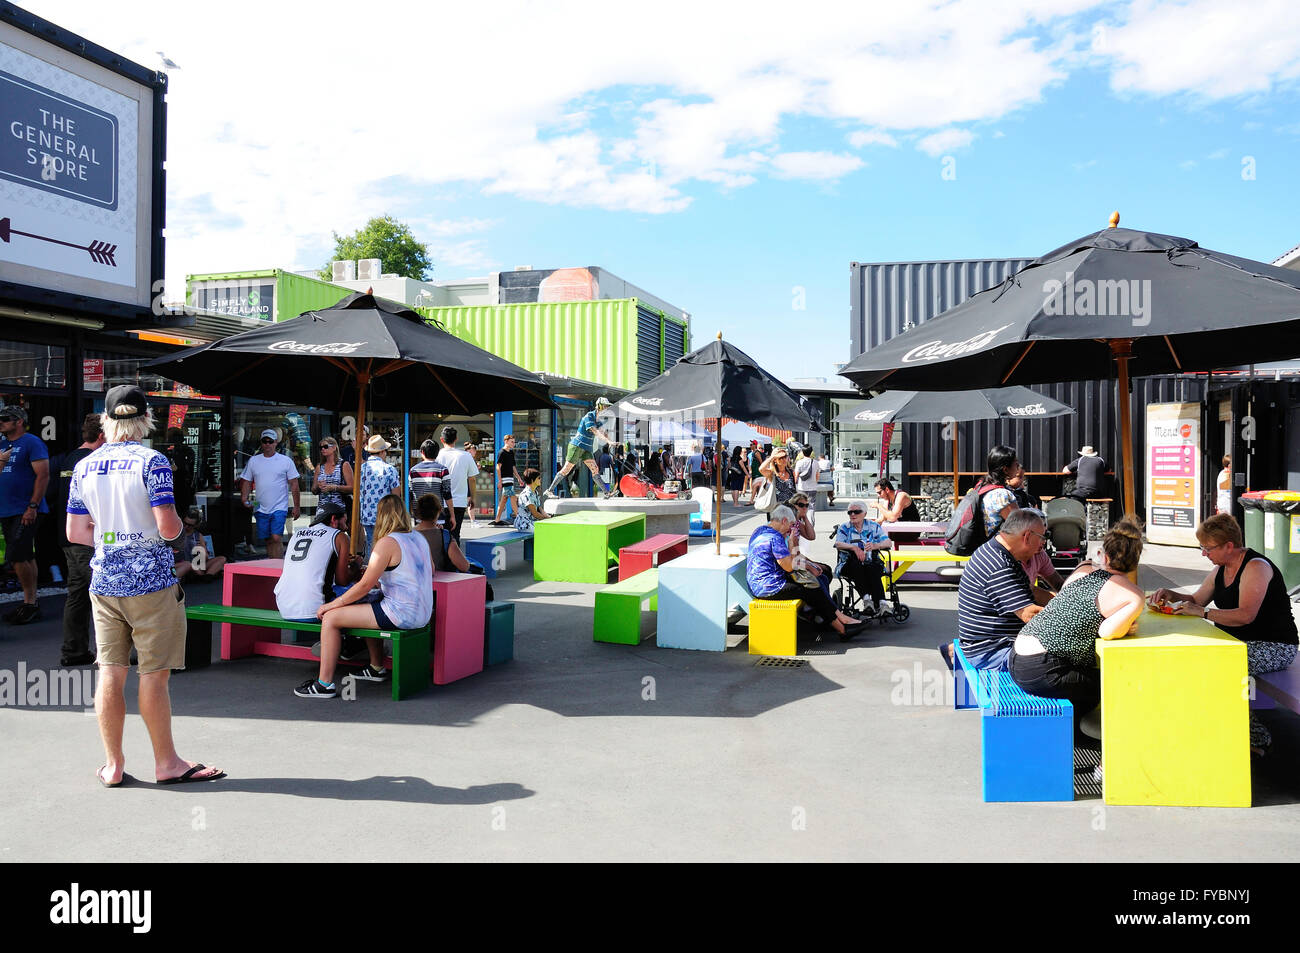 Food court at Re:START Container Mall, Cashel Street, Christchurch, Canterbury, New Zealand - Stock Image